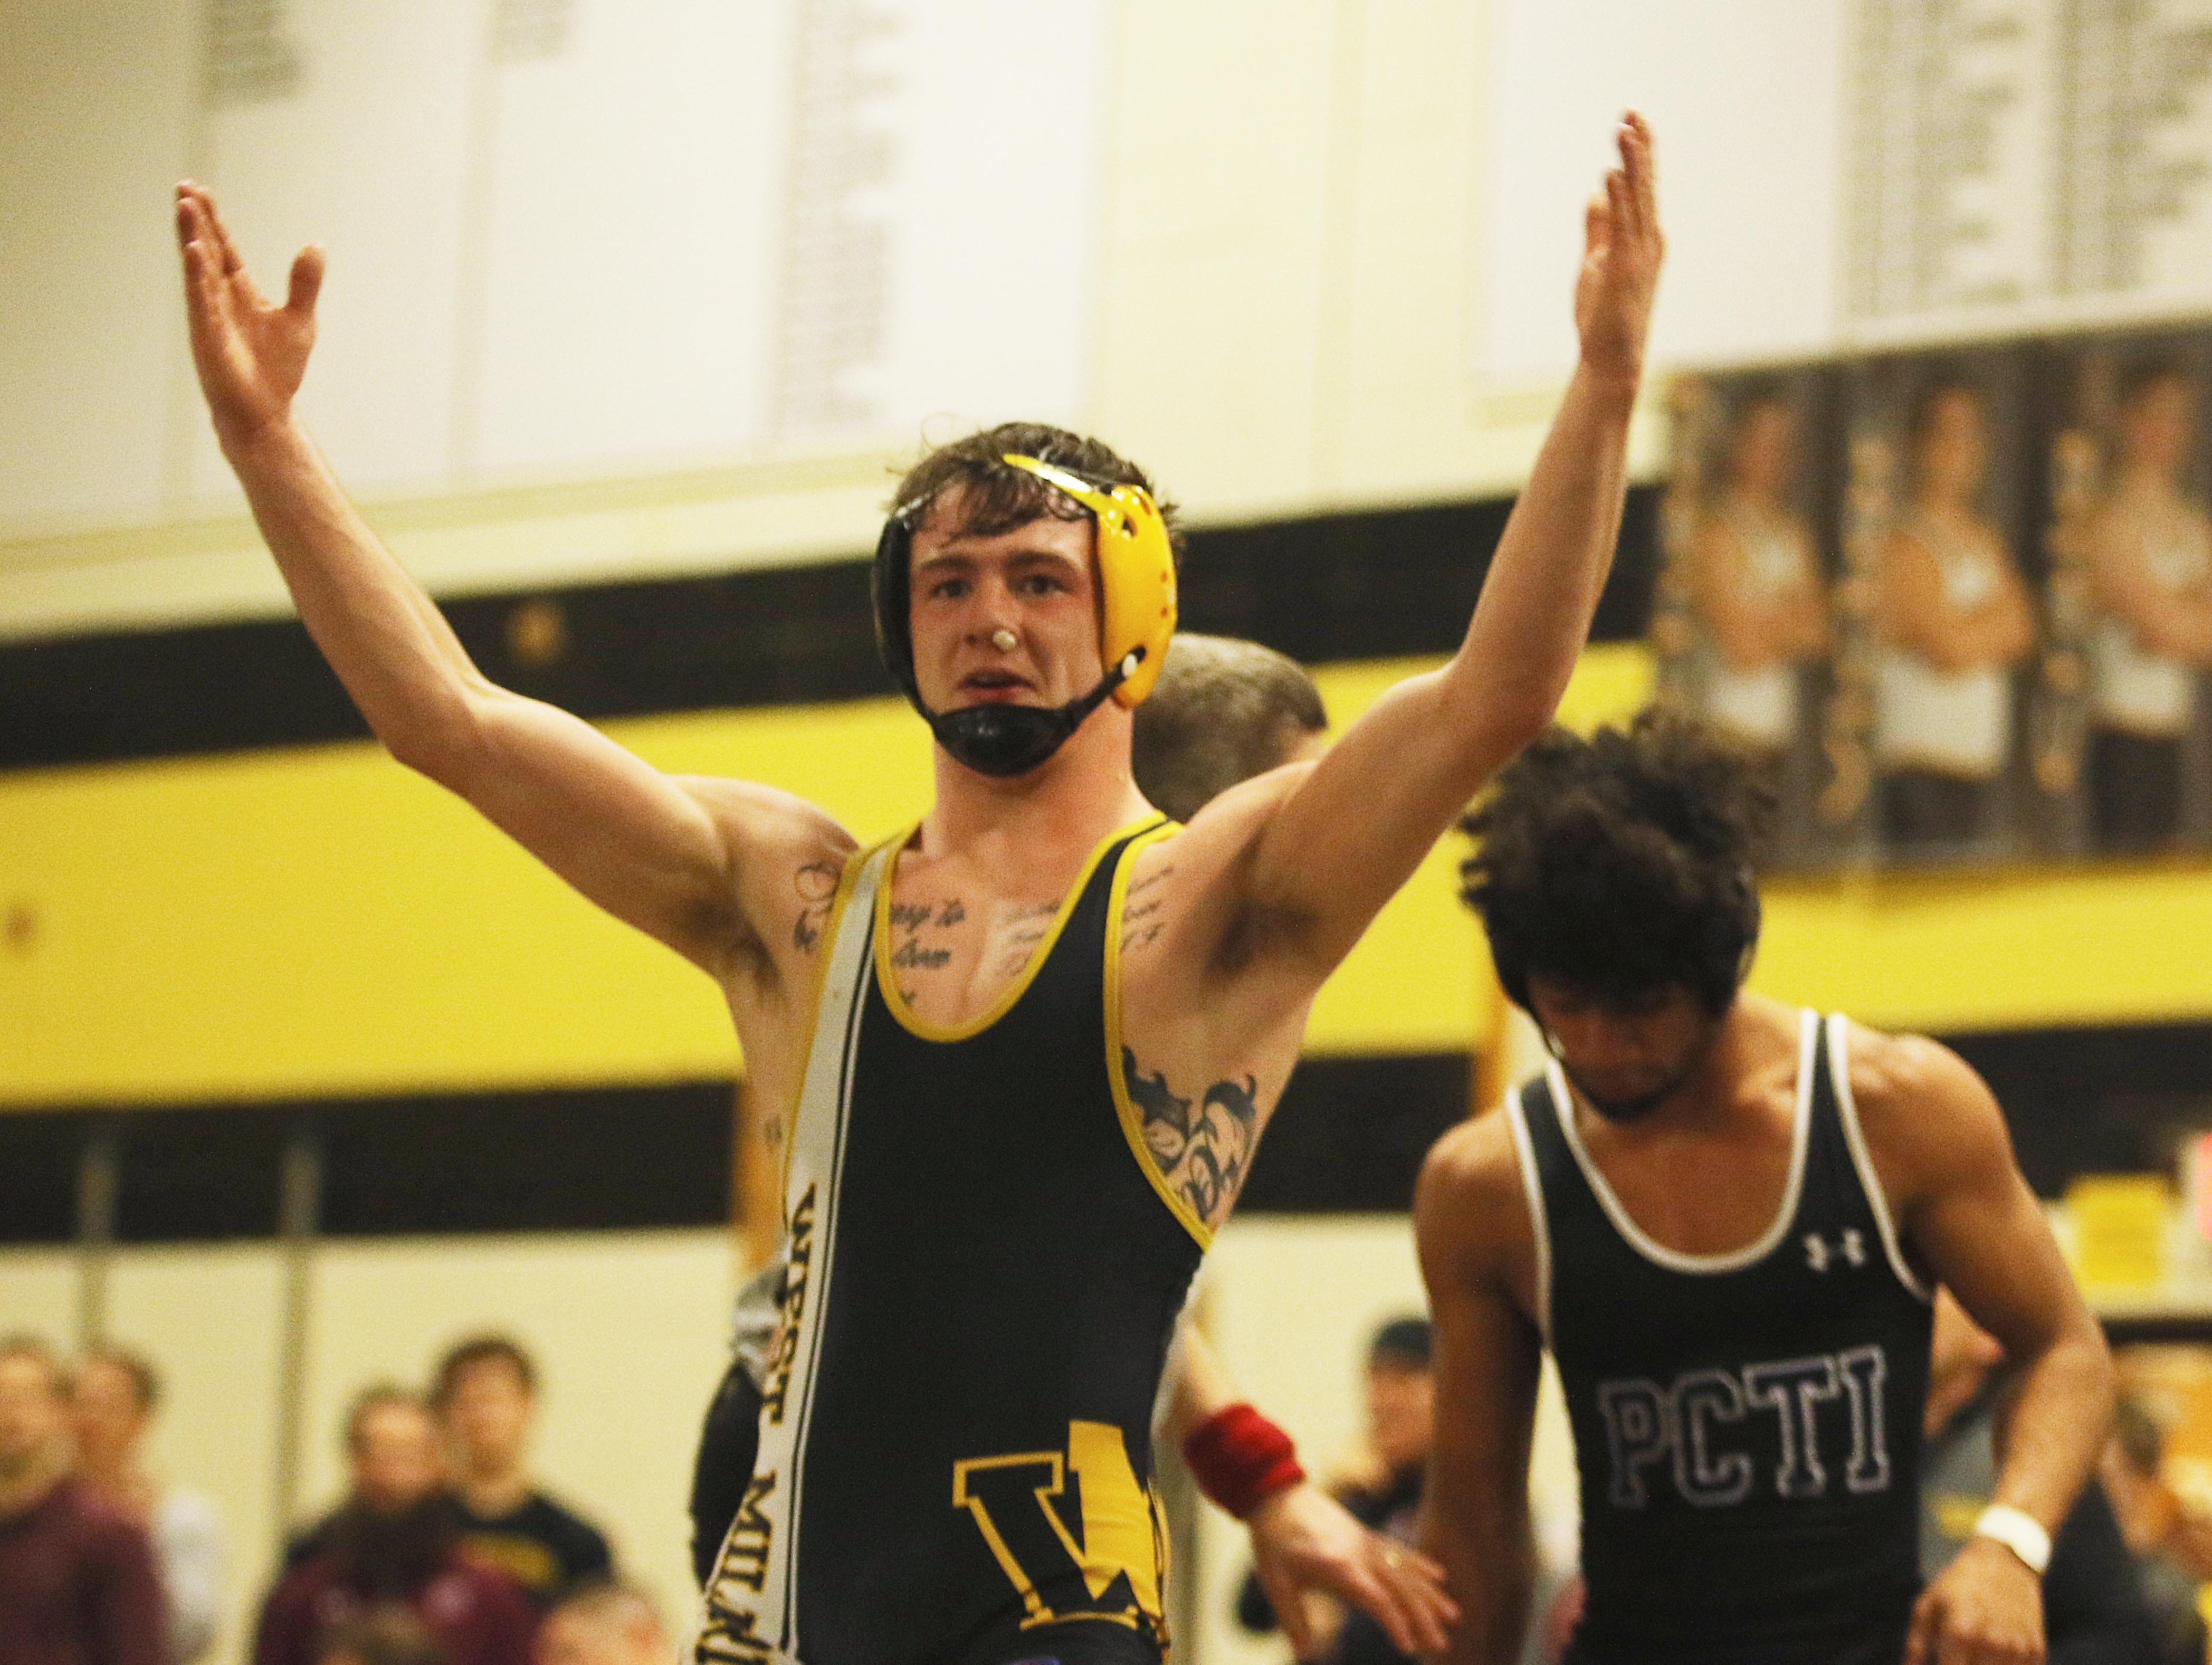 Trevor Fleet of West Milford after he defeated Christian Vertedor of Passaic Tech in the 132 lb. match. in the 132 lb. match.